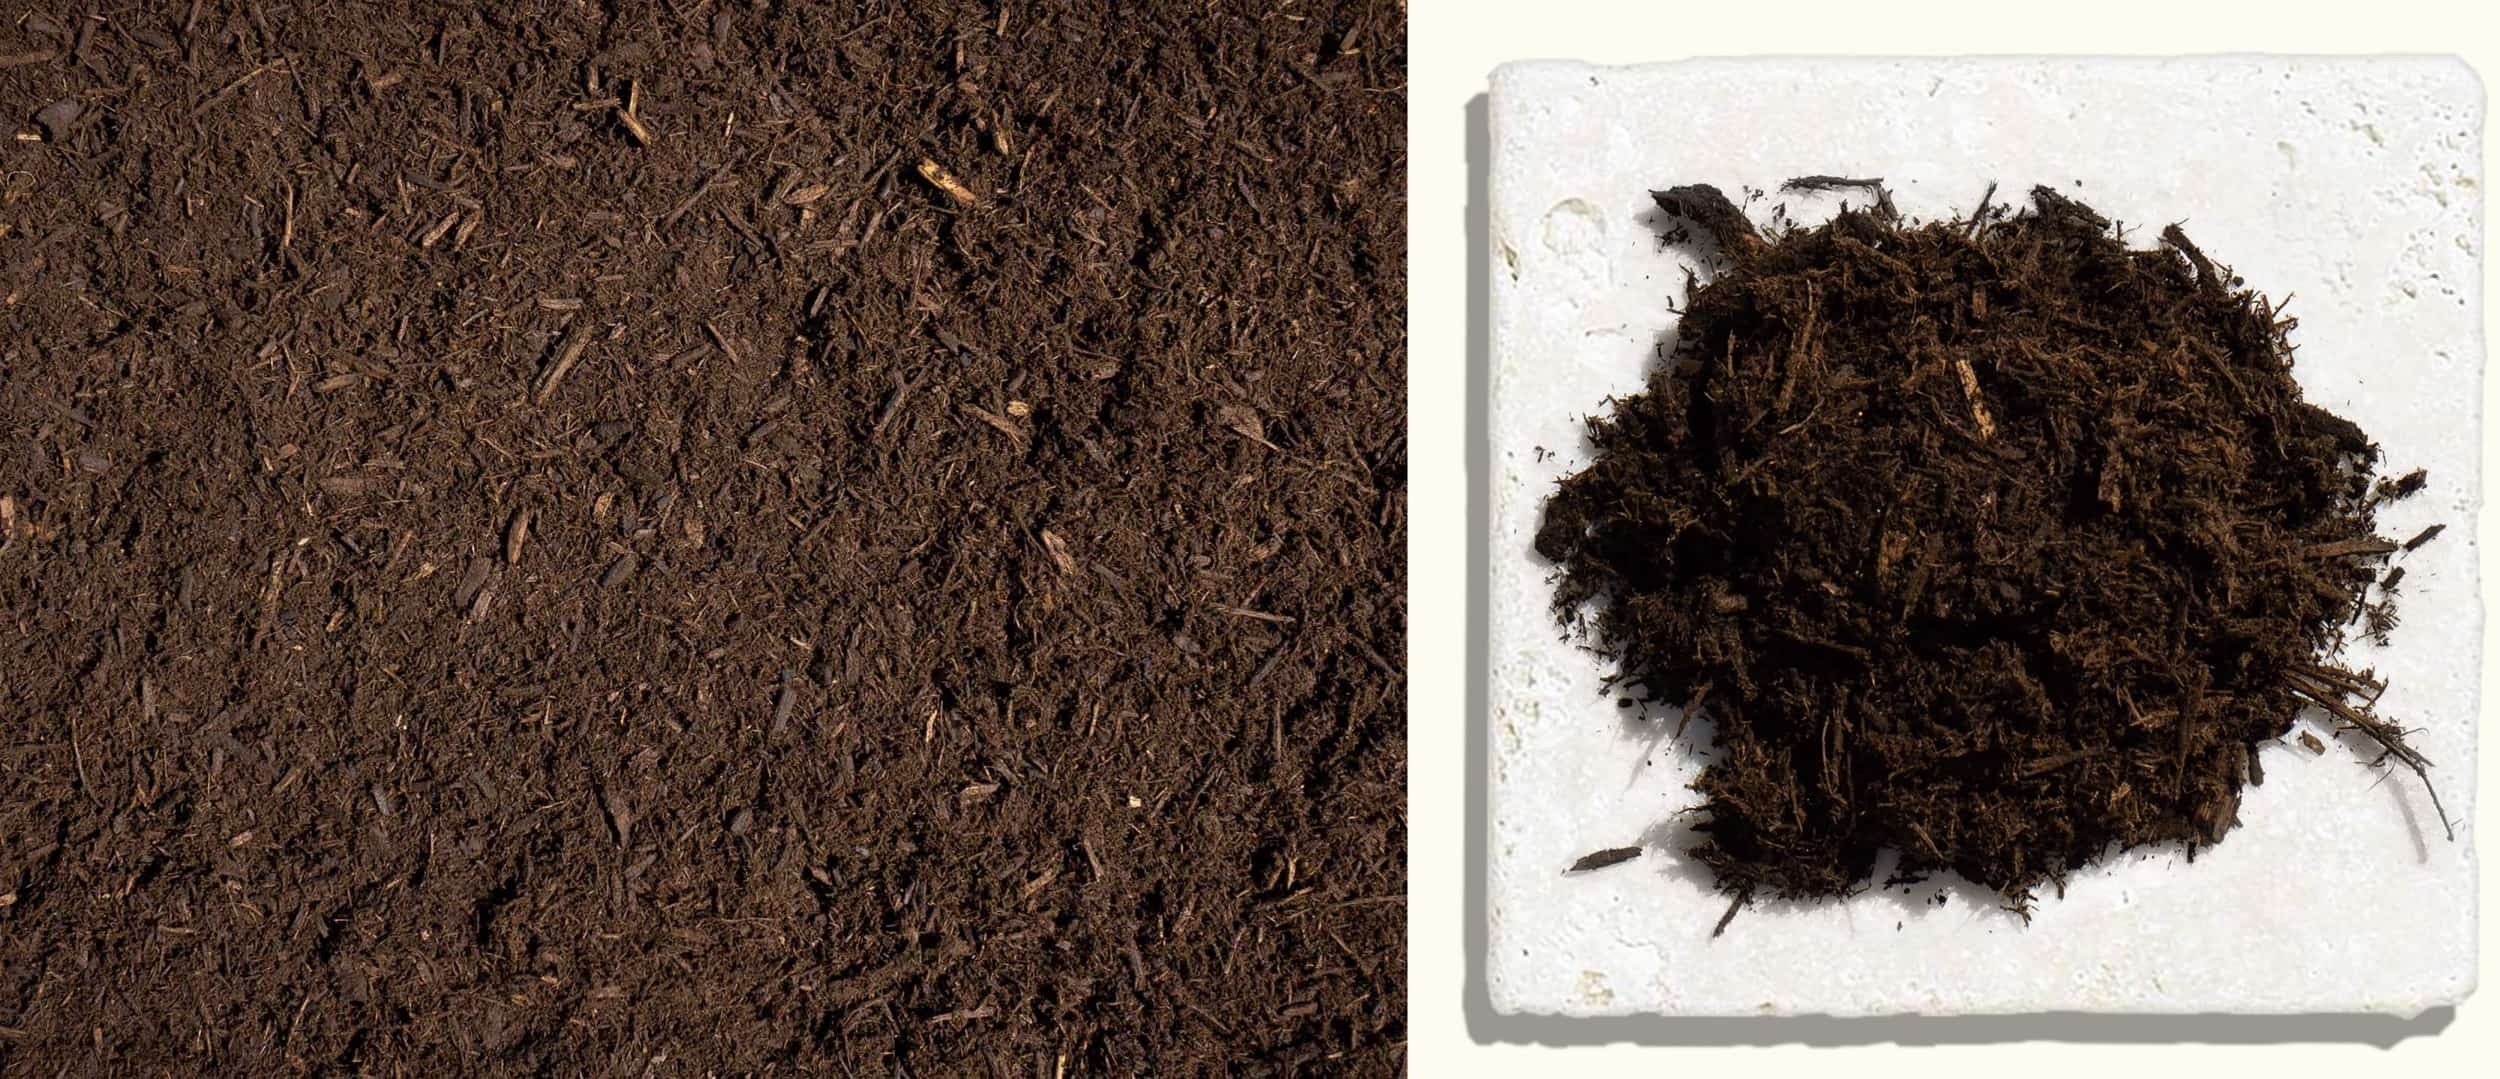 Triple Ground Mulch $33.99 $35.99 $35.99 - This mulch is similar to our Double Ground Mulch, except it is processed a third time to make it much finer. This is commonly used in annual and perennial beds.